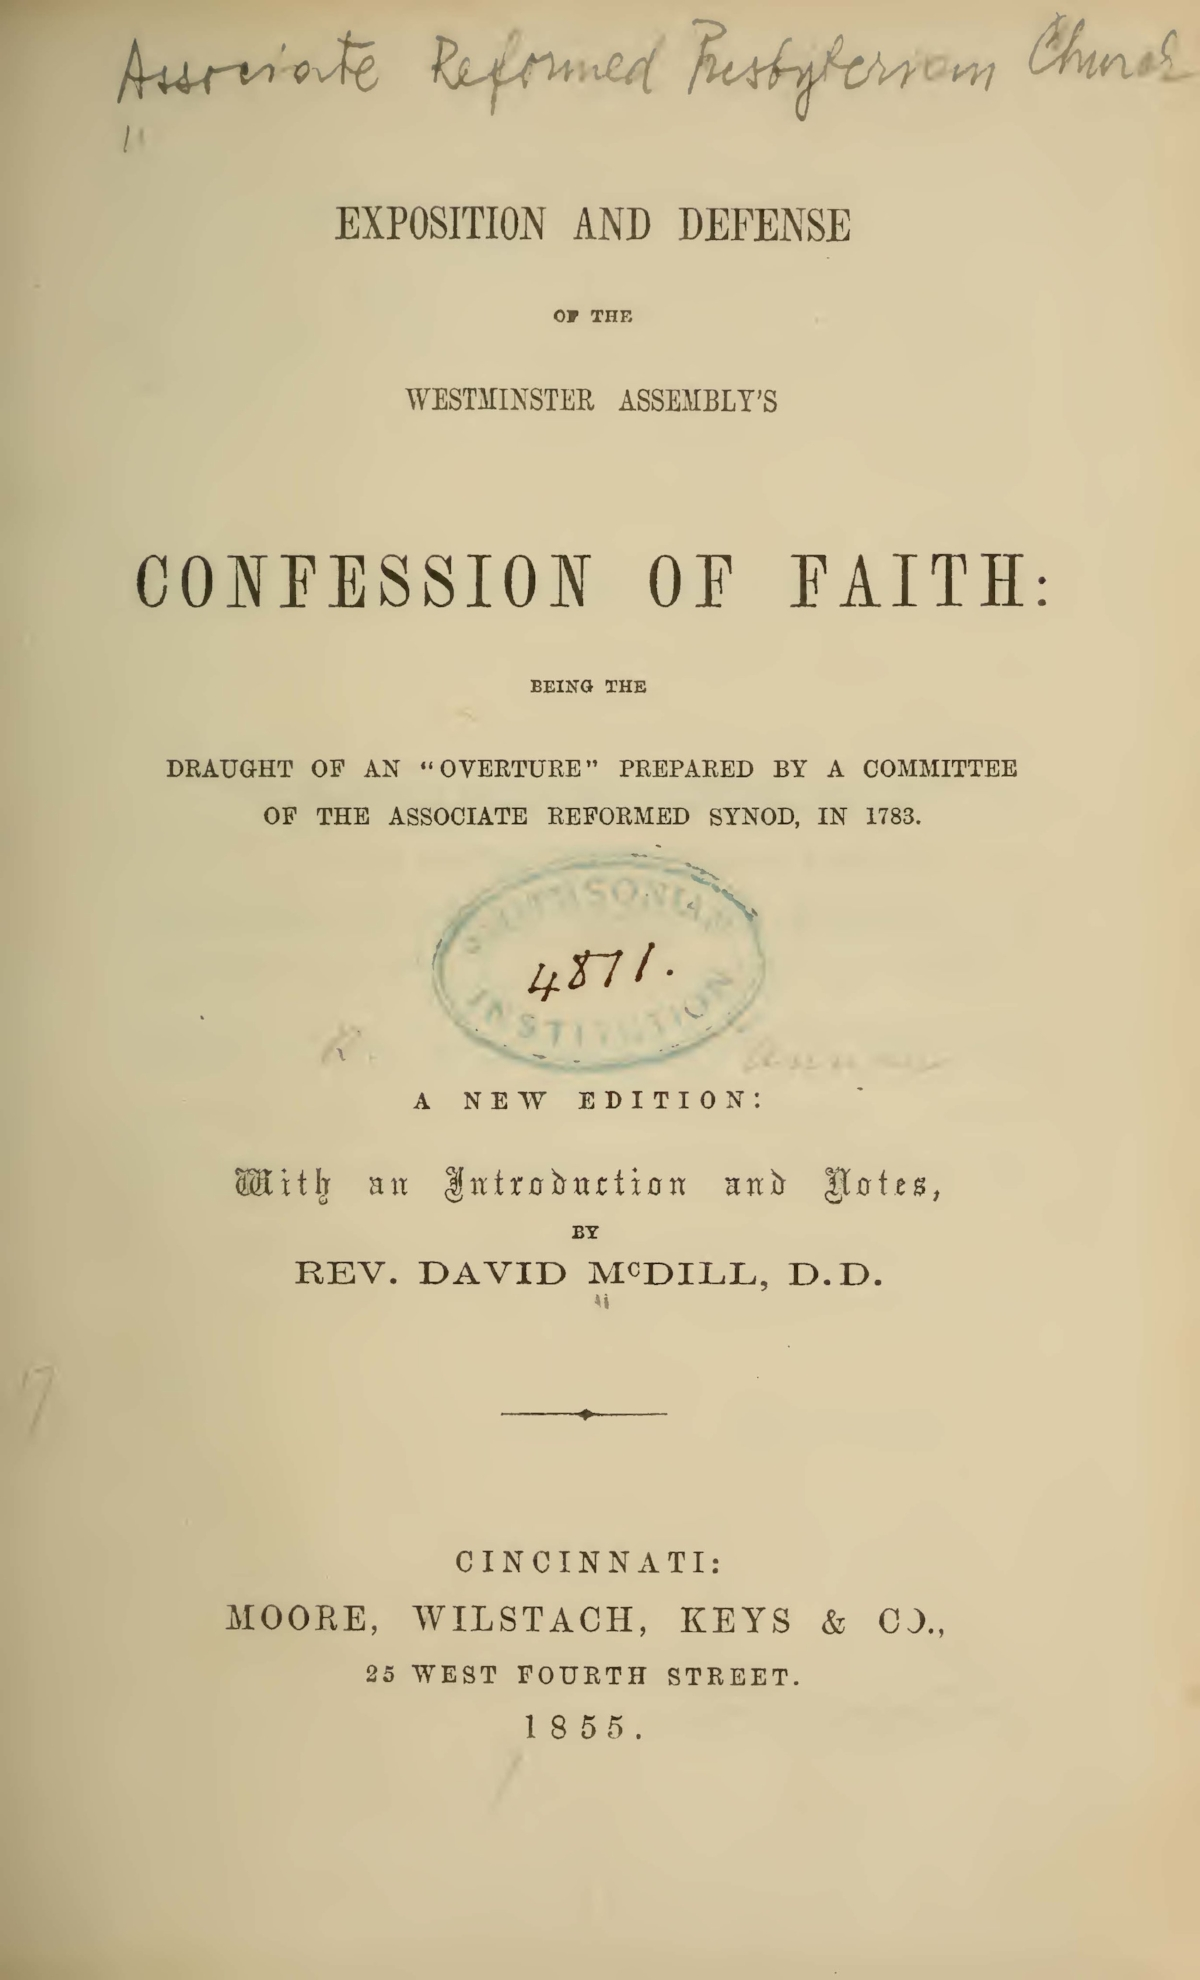 Annan, Robert, Exposition and Defense of the Westminster Assembly's Confession of Faith Title Page.jpg